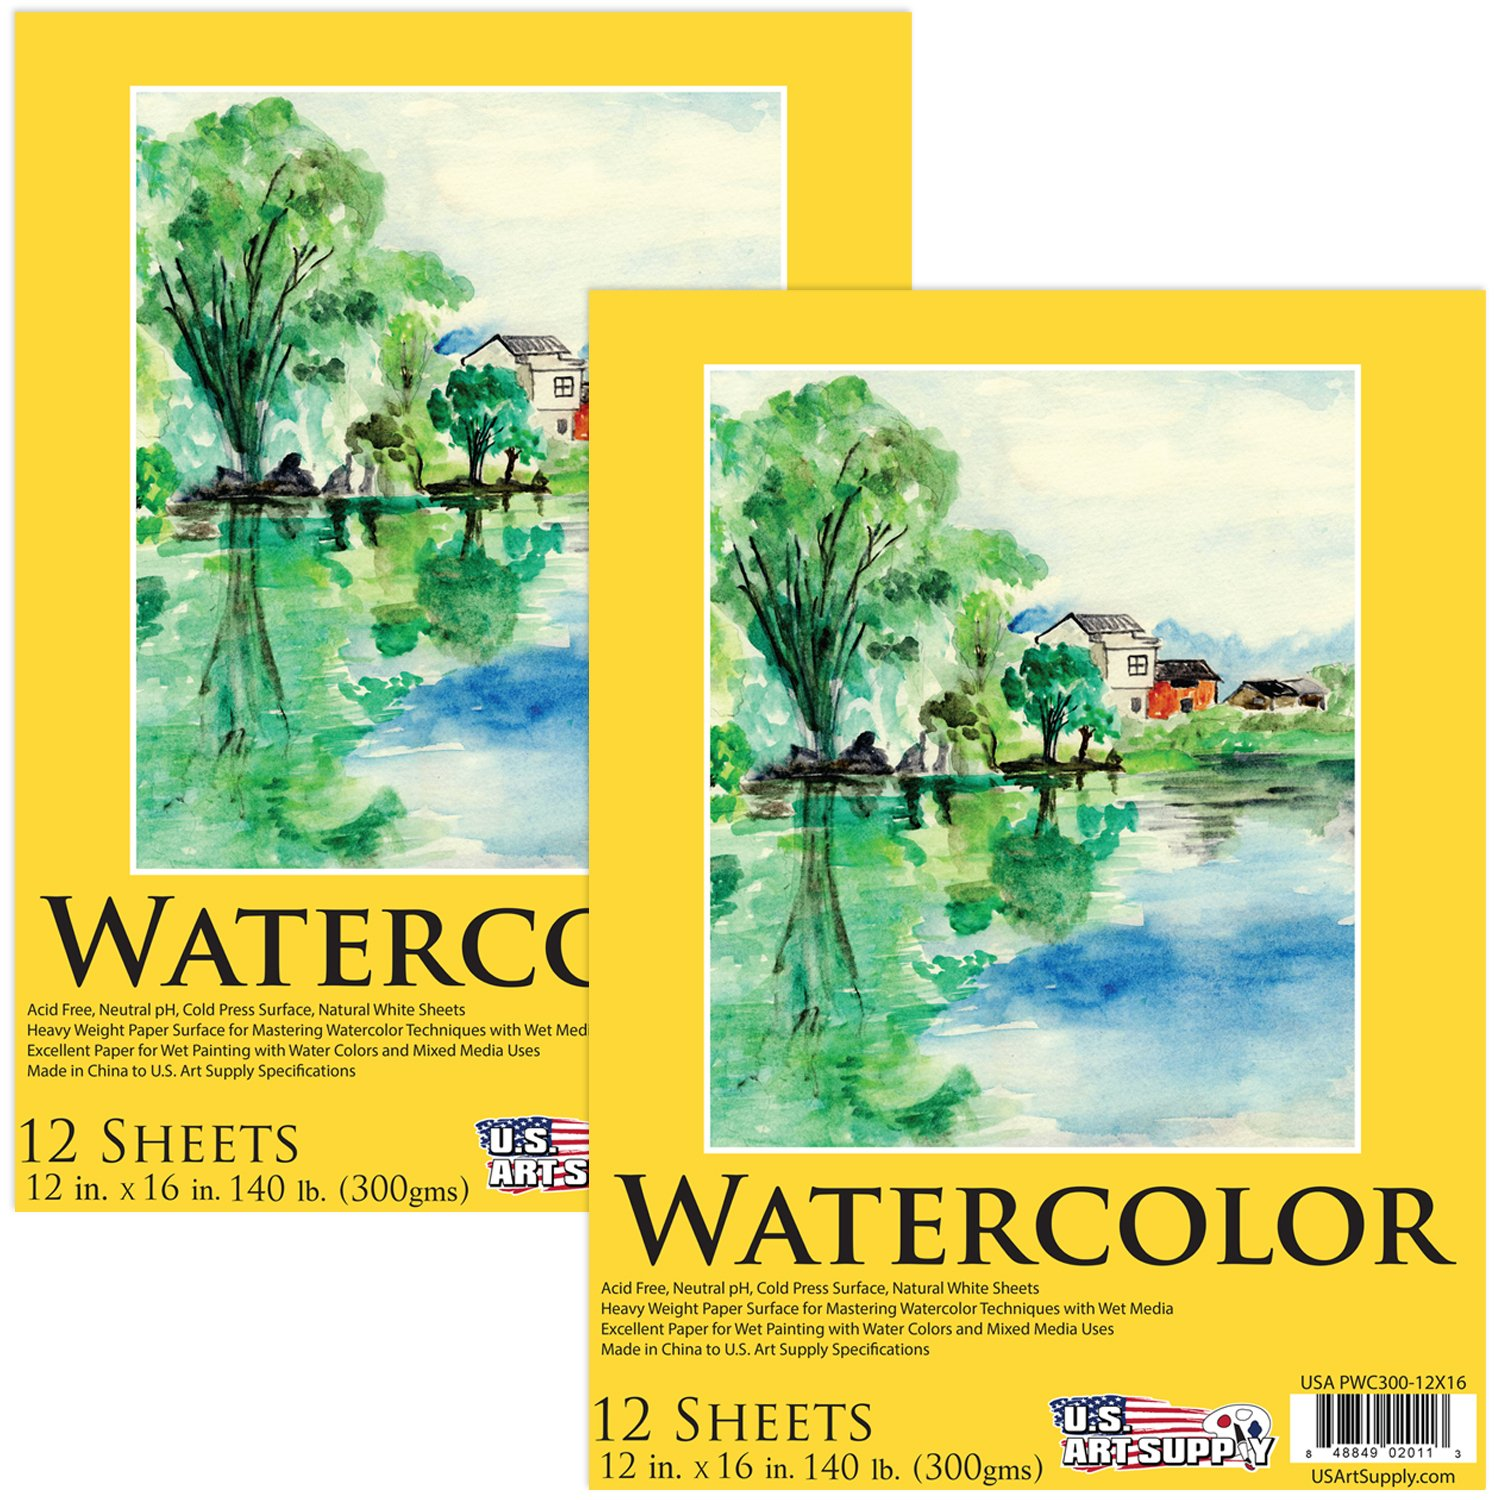 U.S. Art Supply 12'' x 16'' Premium Heavy-Weight Watercolor Painting Paper Pad, 140 Pound (300gsm), Pad of 12-Sheets (Pack of 2 Pads) by US Art Supply